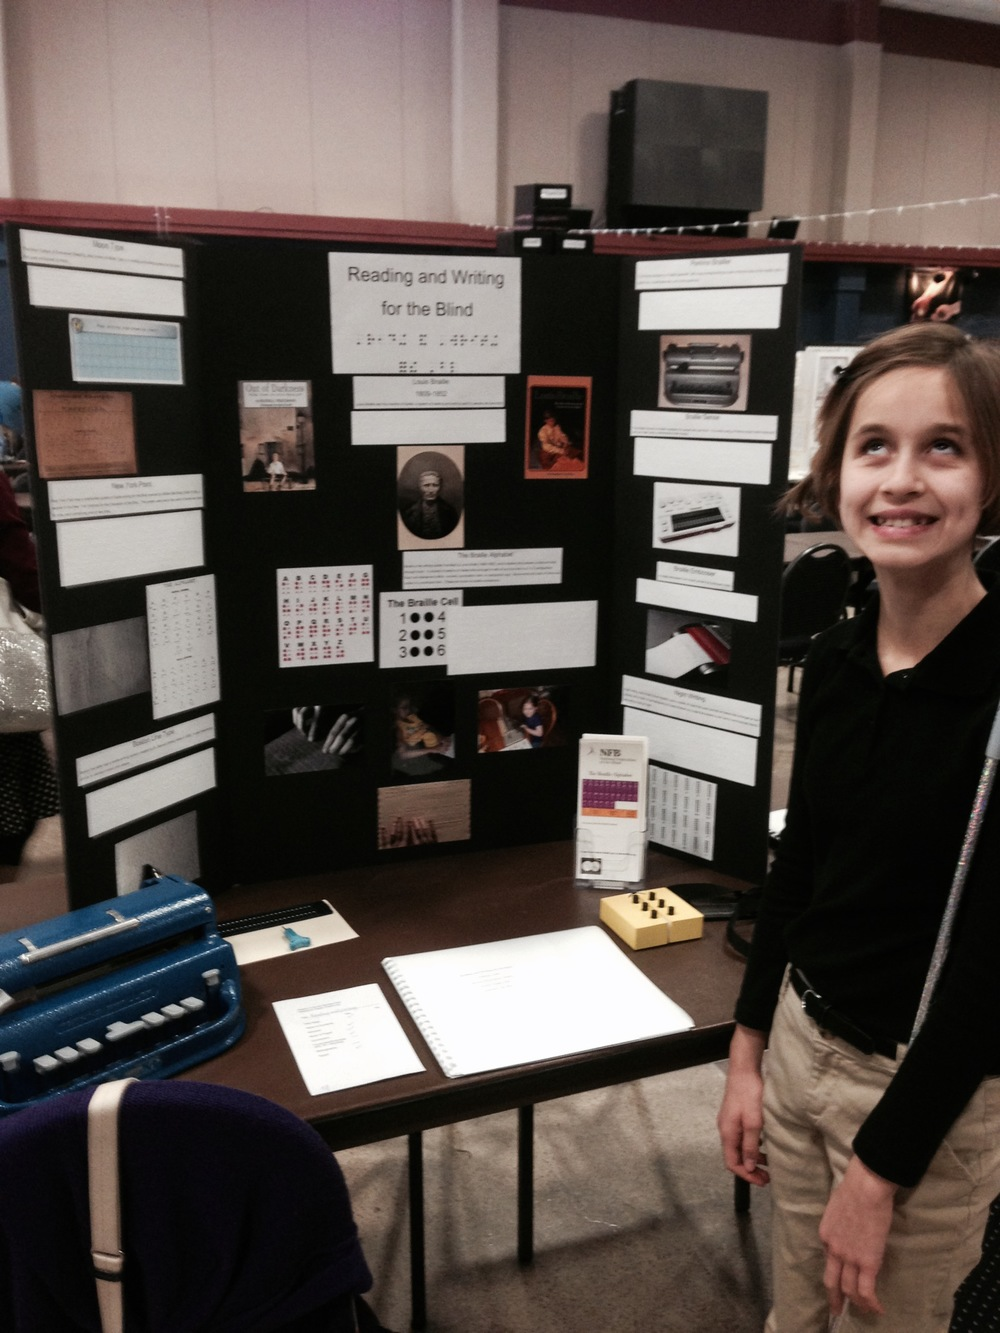 Lindsay presents Reading and Writing for the Blind at the 2014 Lincoln Parish Regional Social Studies Fair